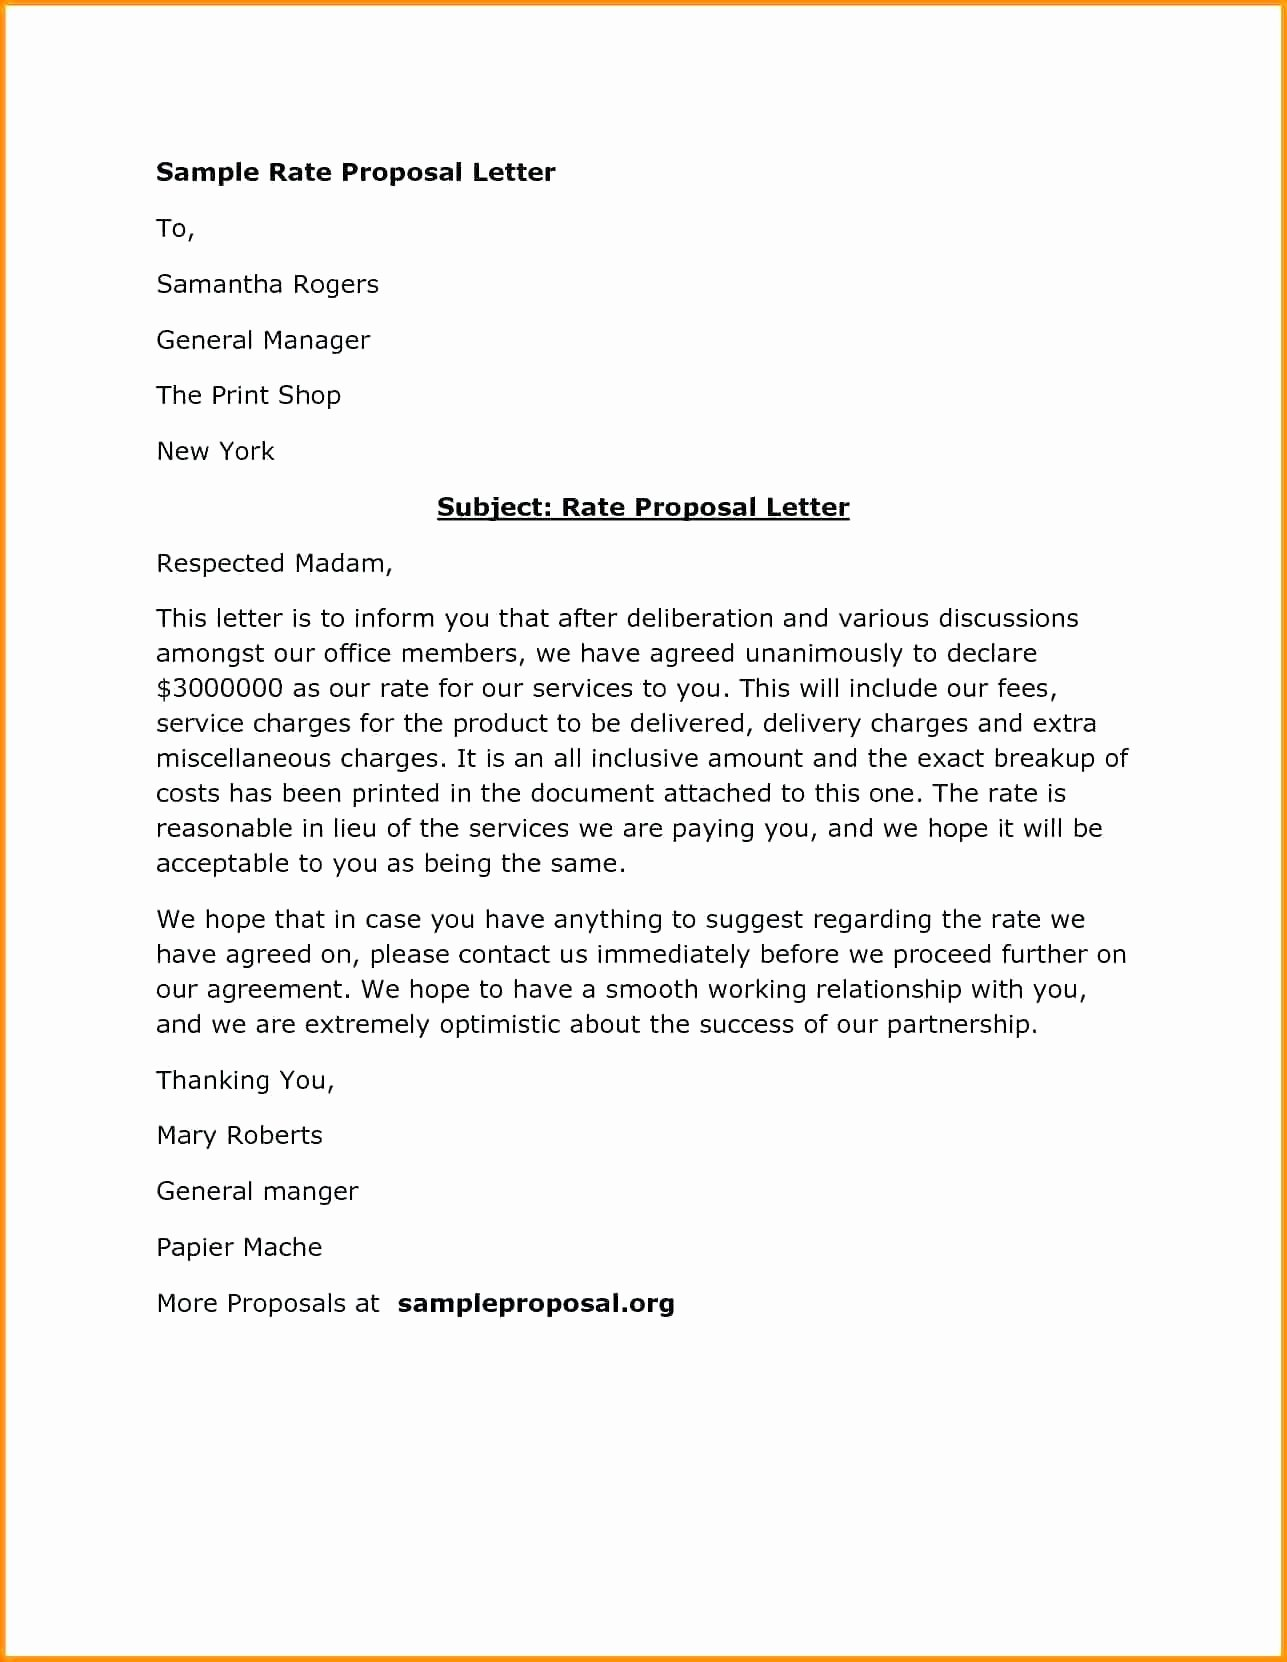 Sample Letter Of Collaboration Proposal Inspirational 20 Business Collaboration Proposal Letter Sample